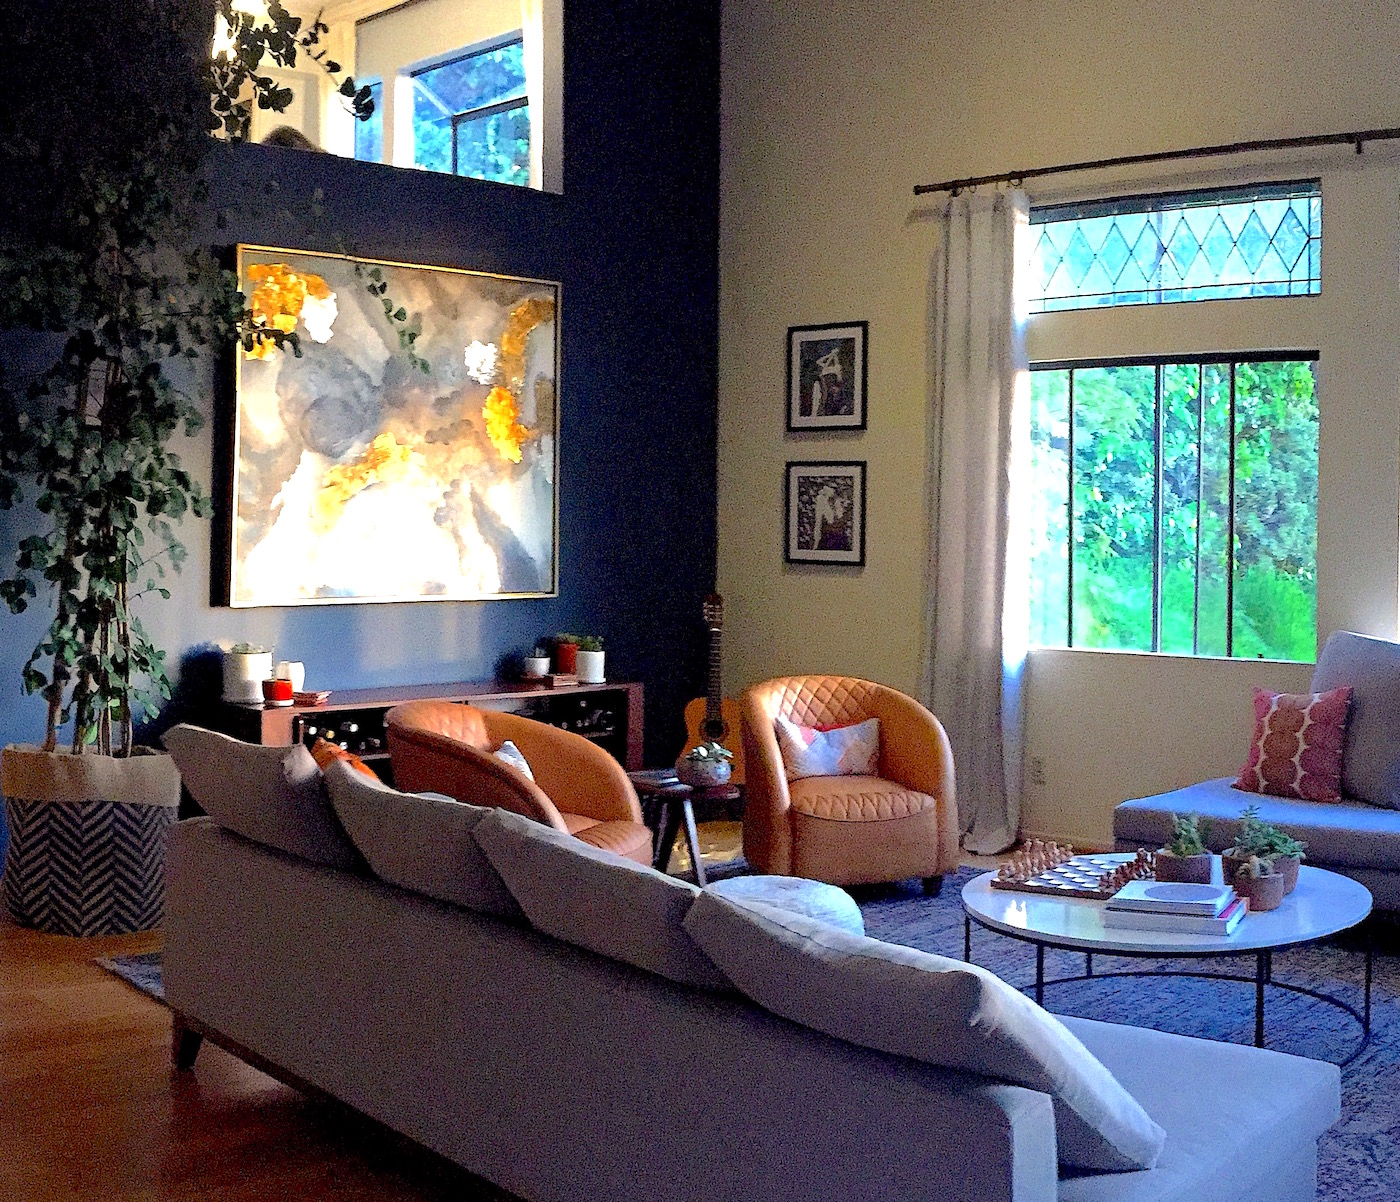 interior-silver-lake-living-room copy.jpg